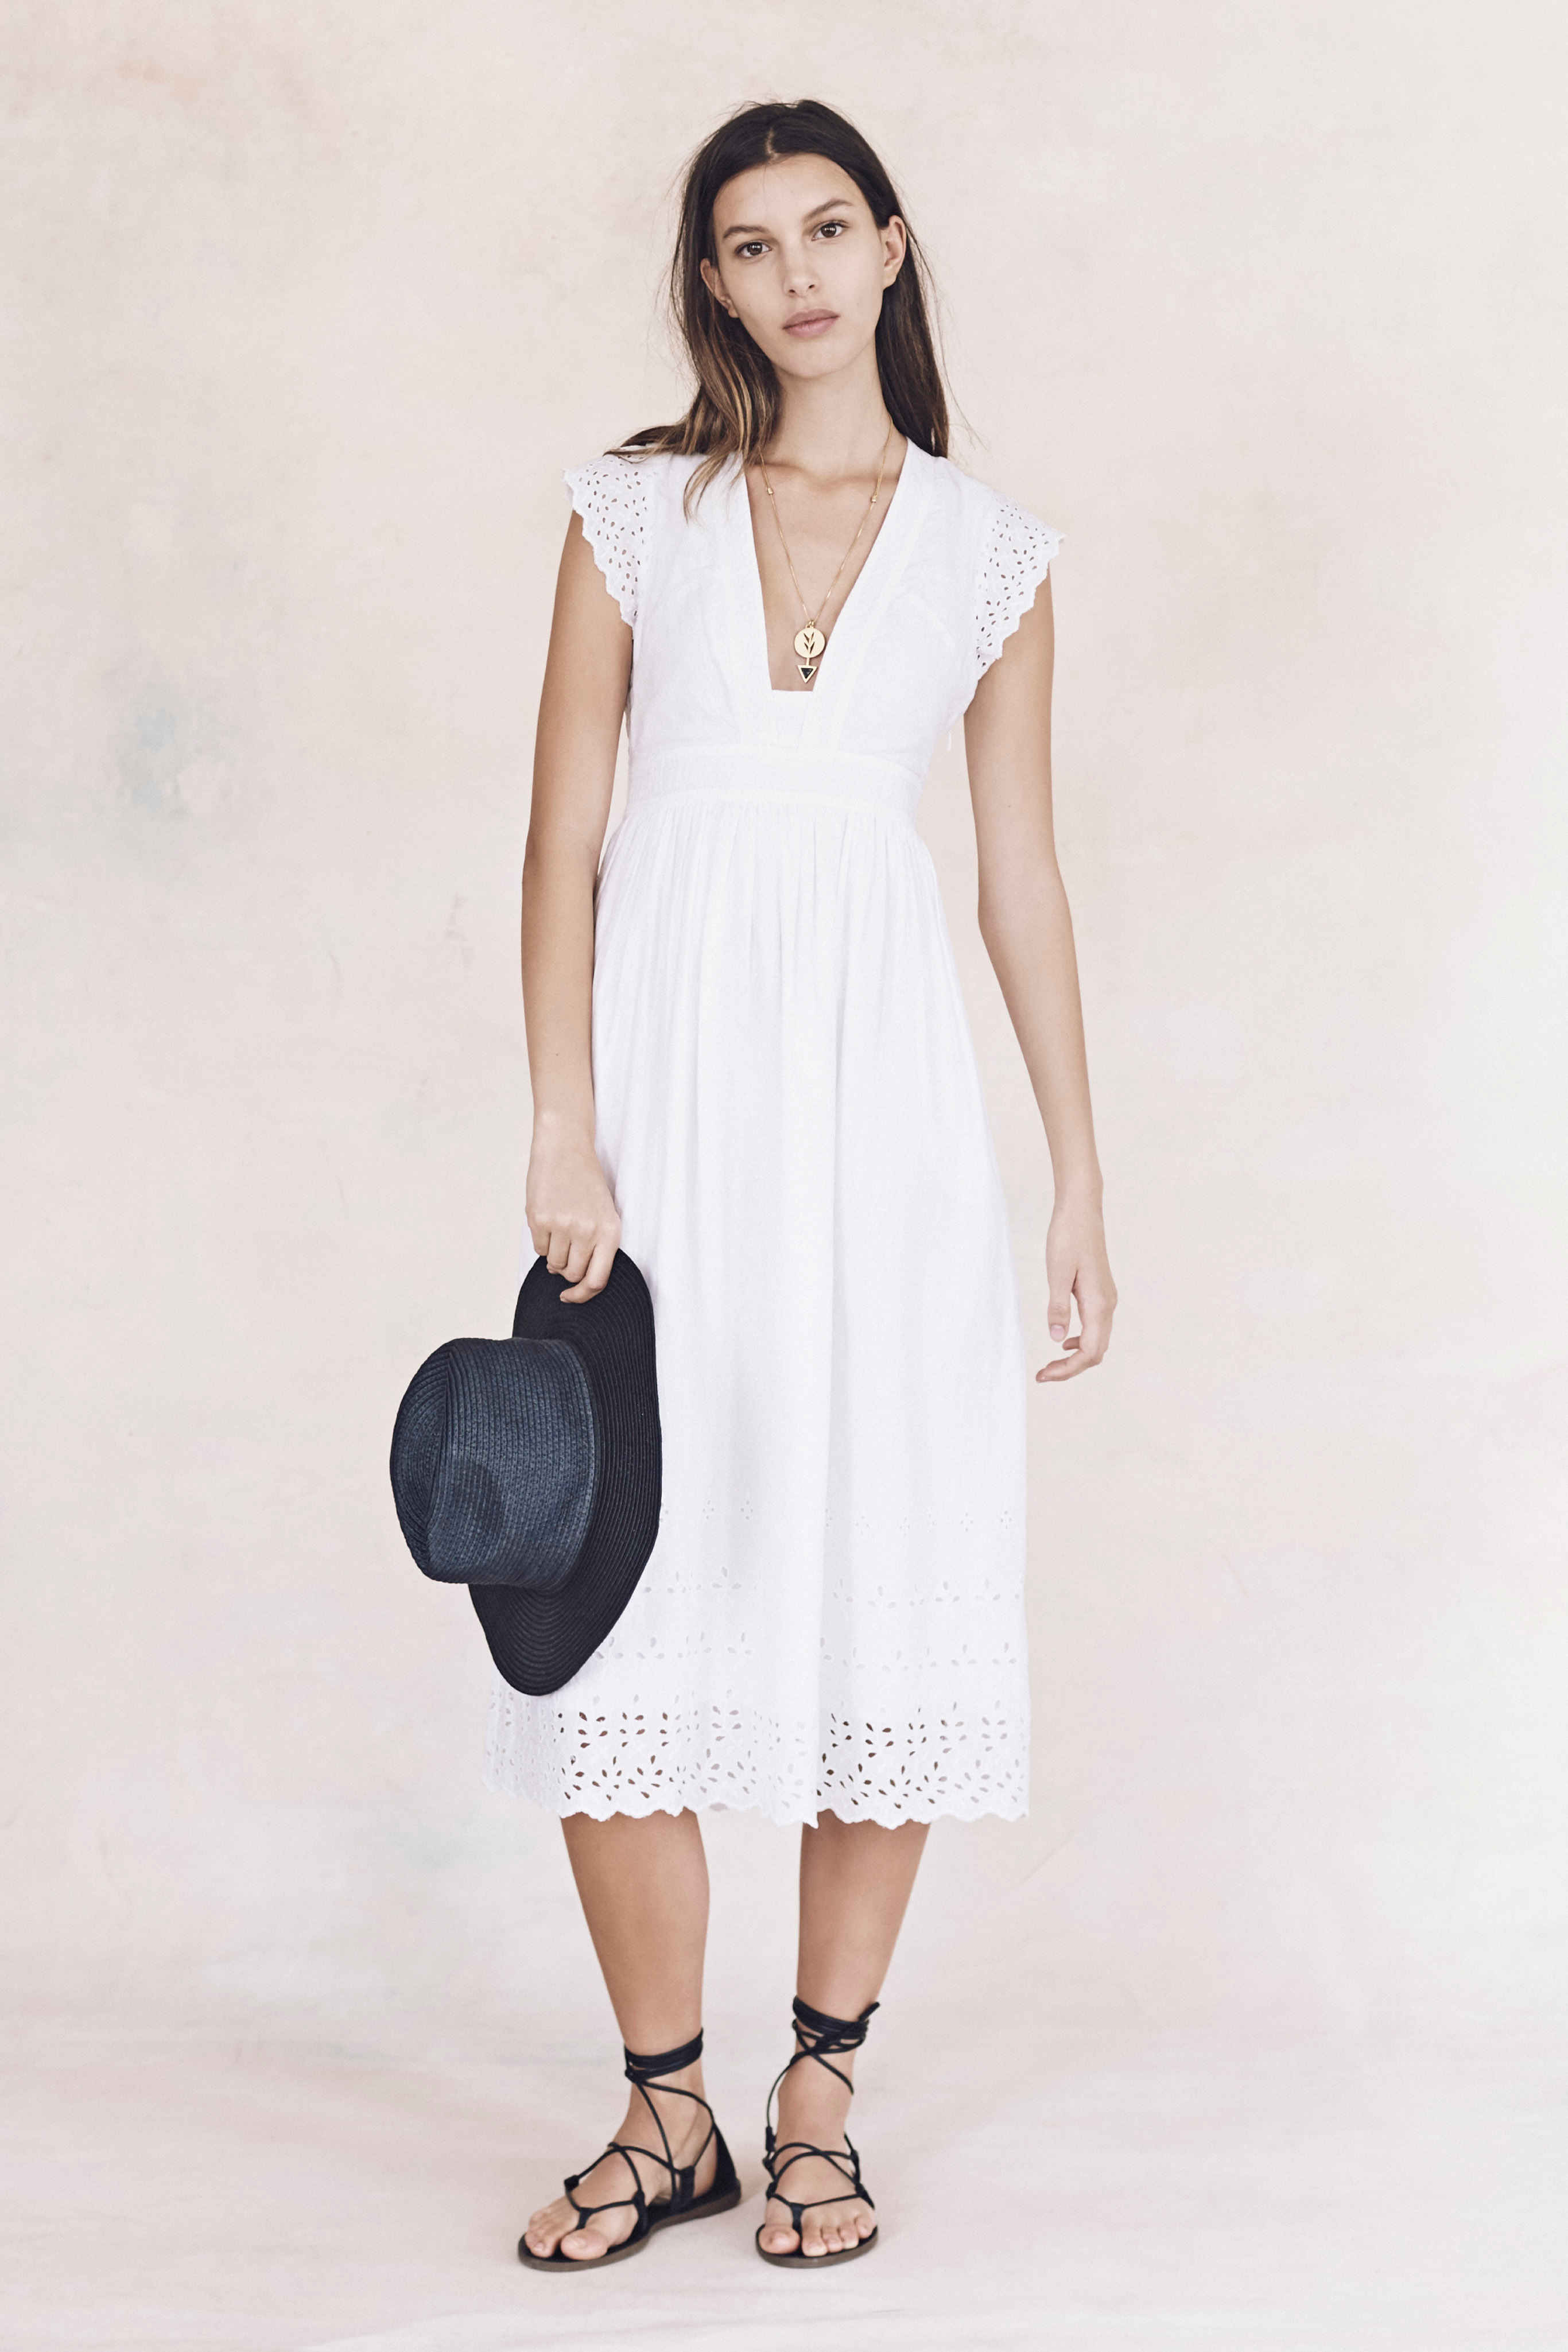 Madewell just released their spring 2016 collection, and trust me, you are going to be clamoring for every single piece. It's just so wearable. - Madewell Spring 2016 Lookbook - white Lace dress